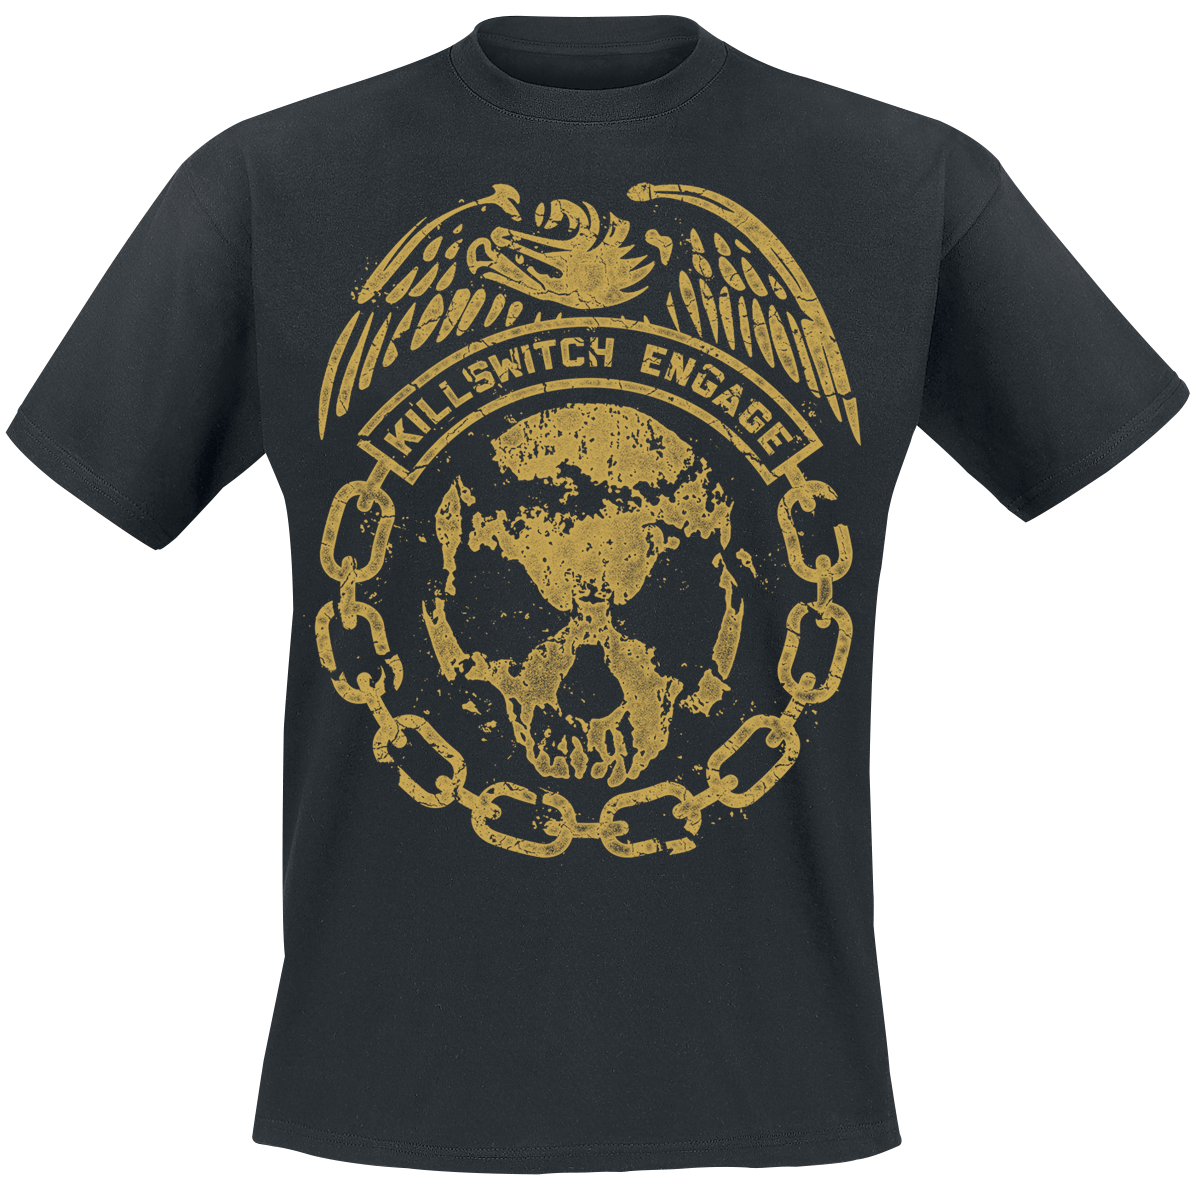 Killswitch Engage Crumble T Shirt black-in T-Shirts from